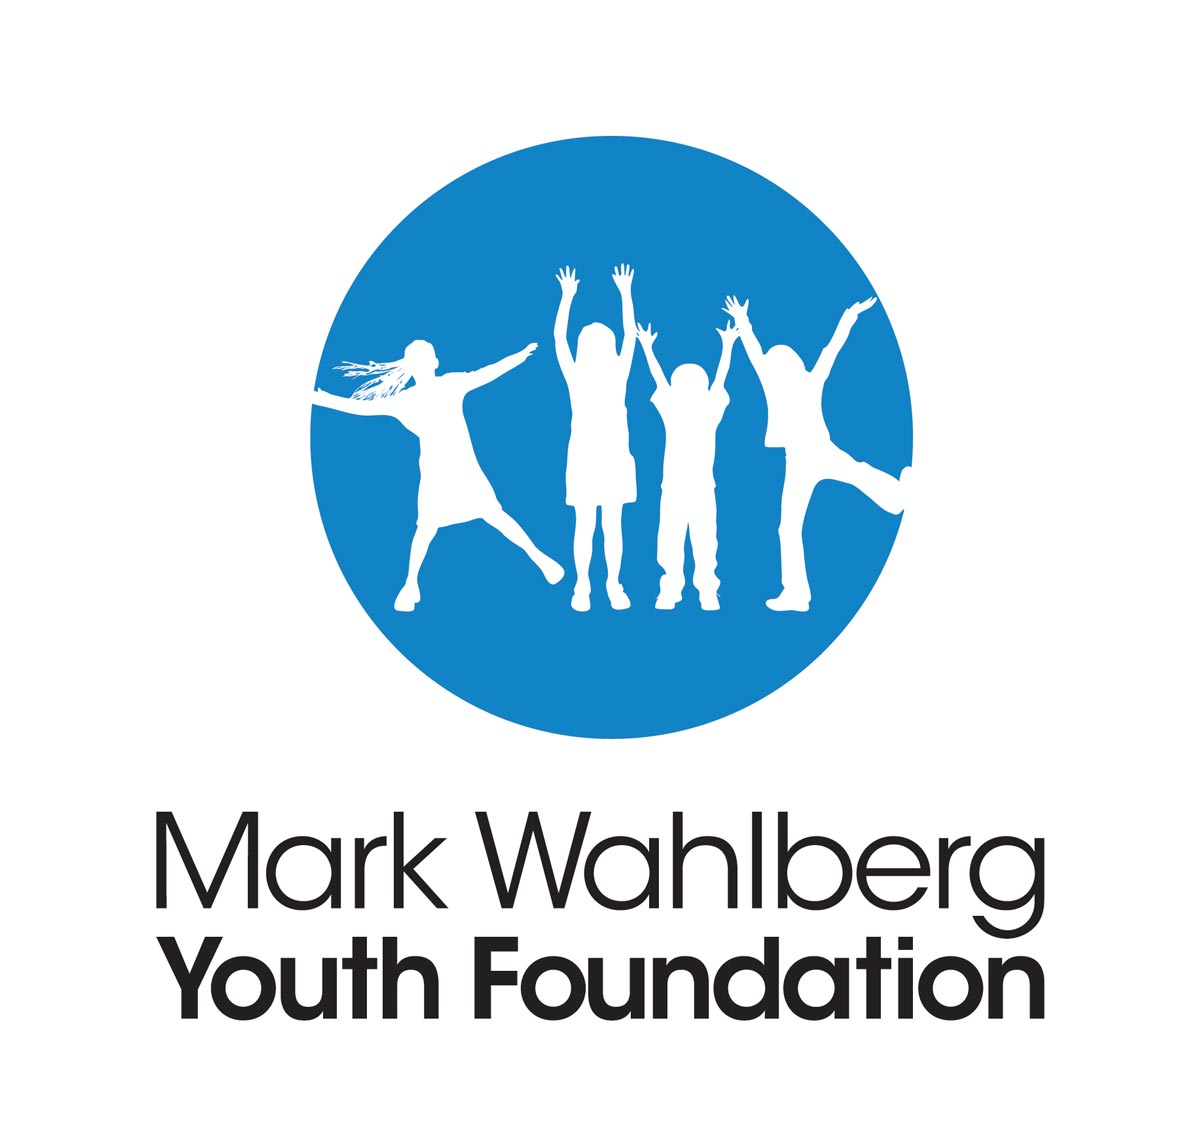 Mark Wahlberg Youth Foundation Logo